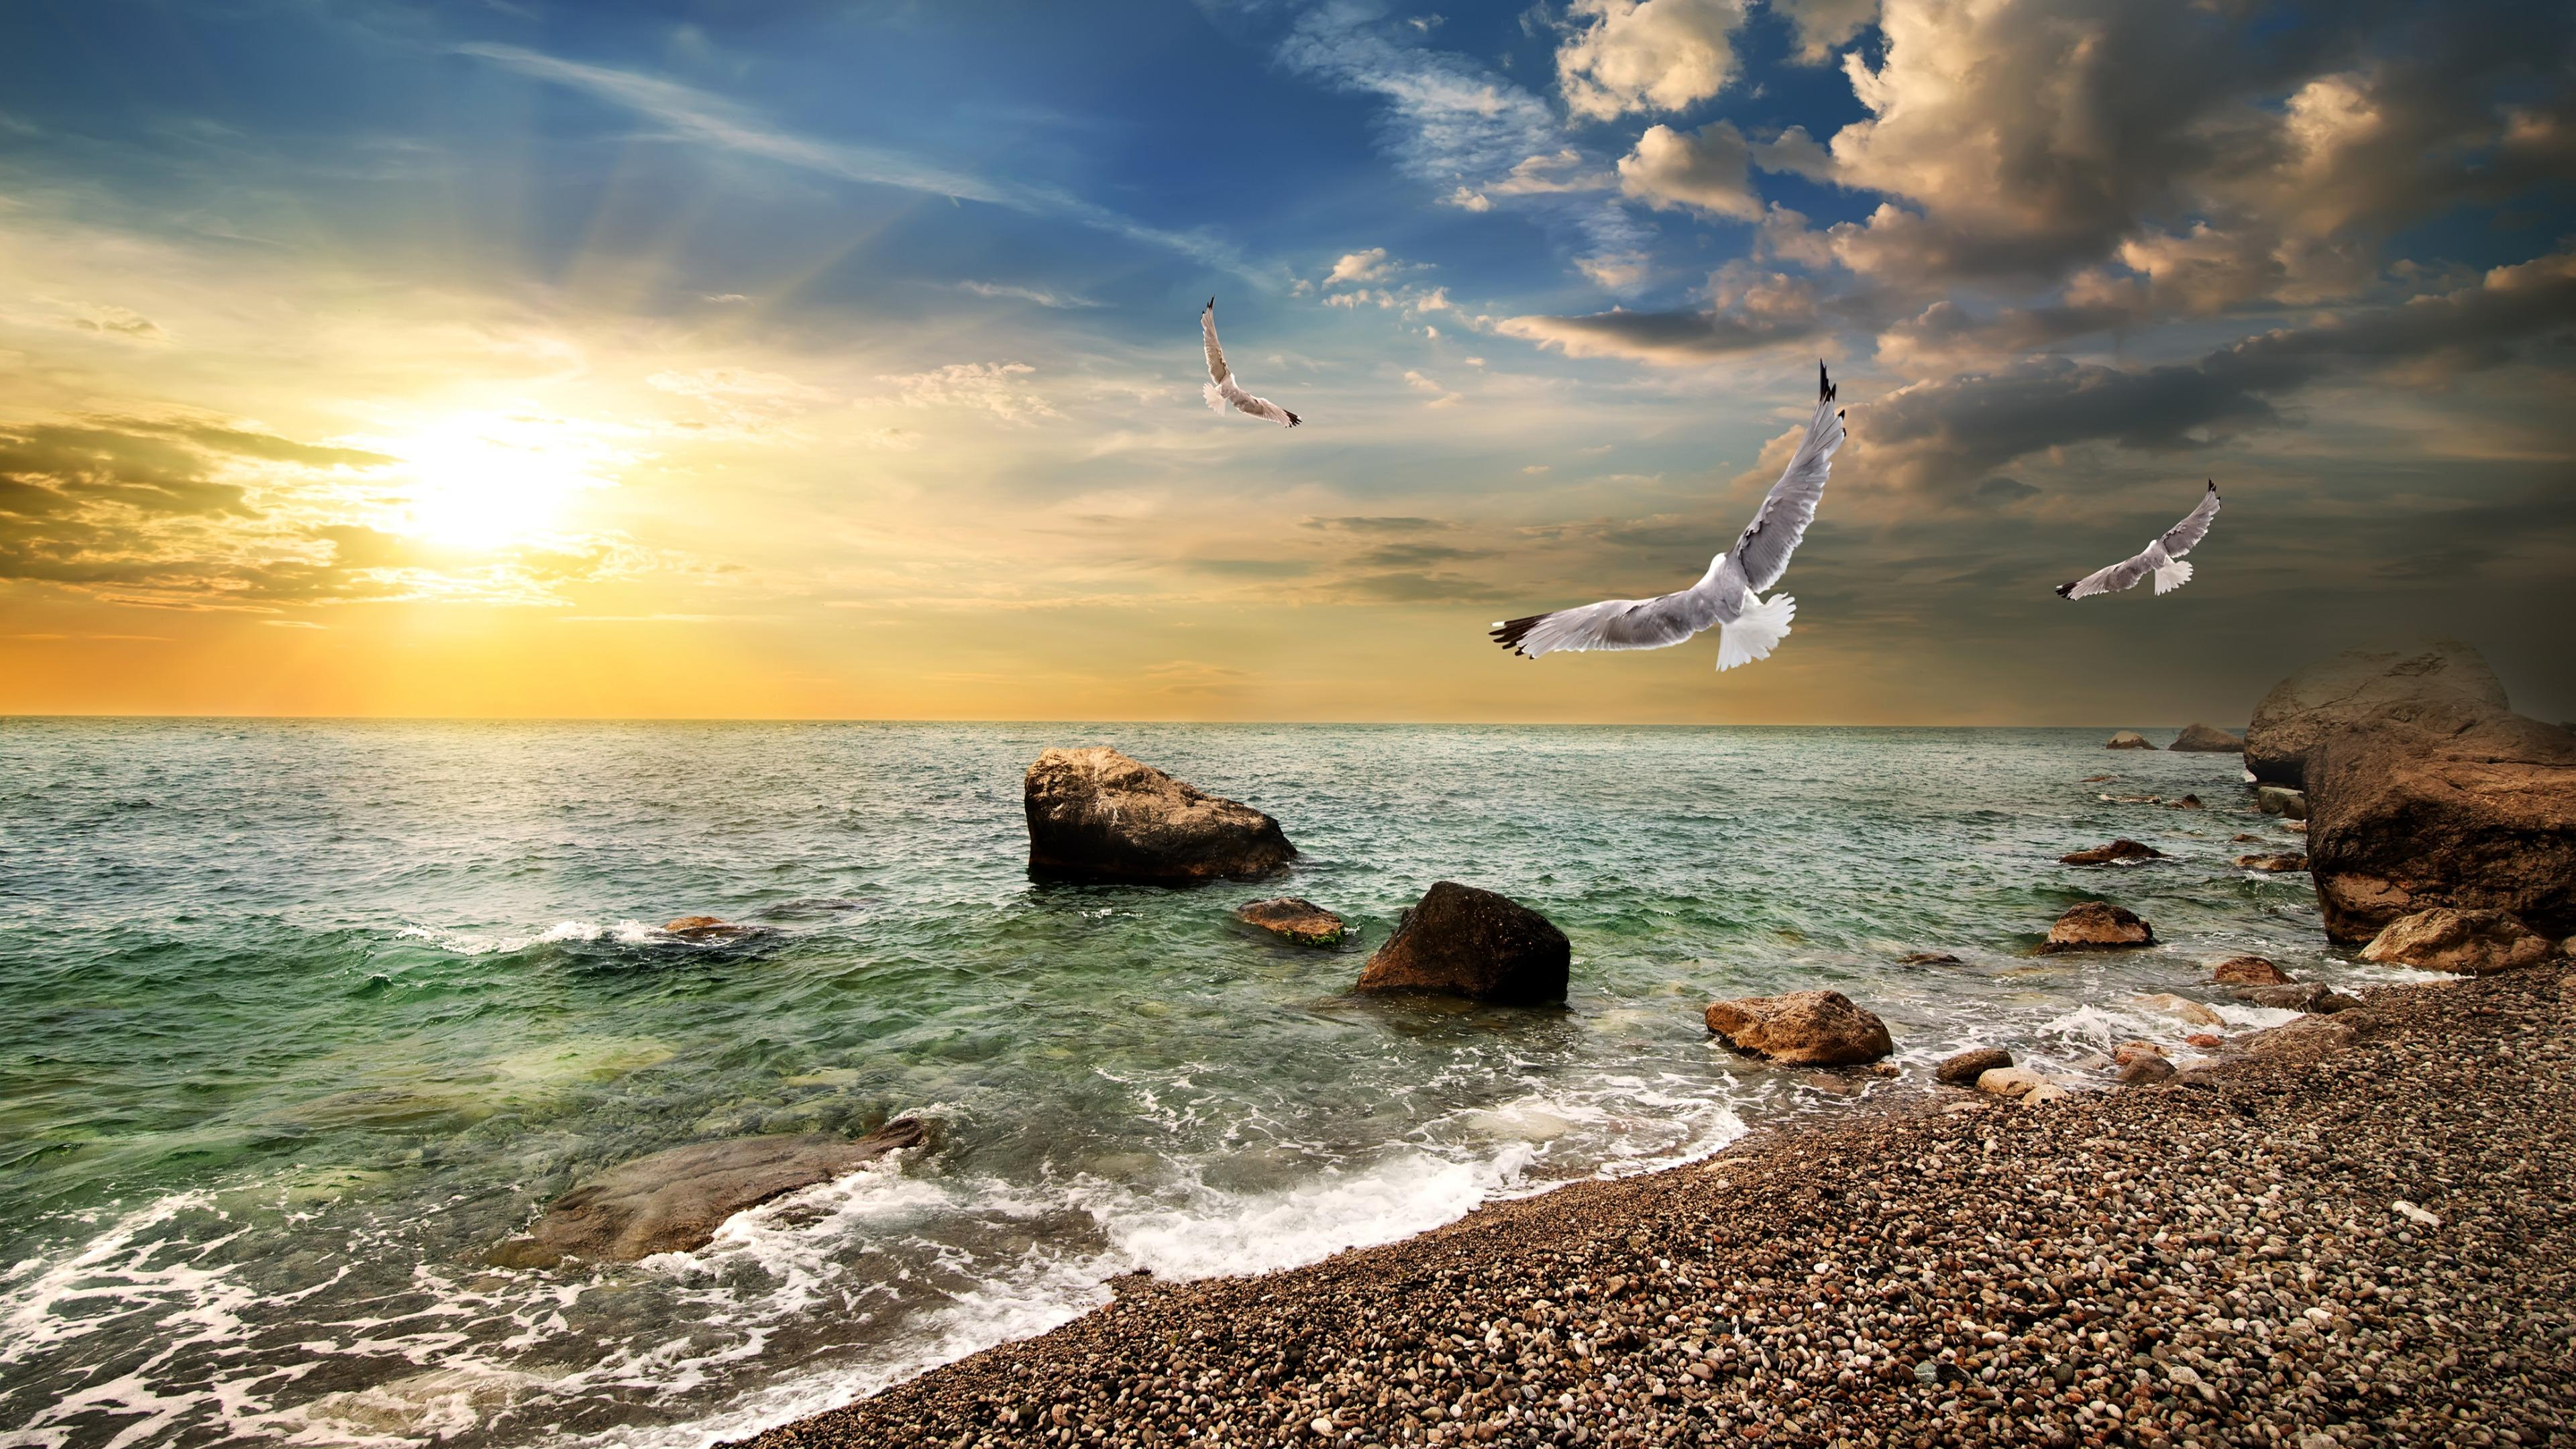 Seagulls over the water in the glowing sunrise wallpaper